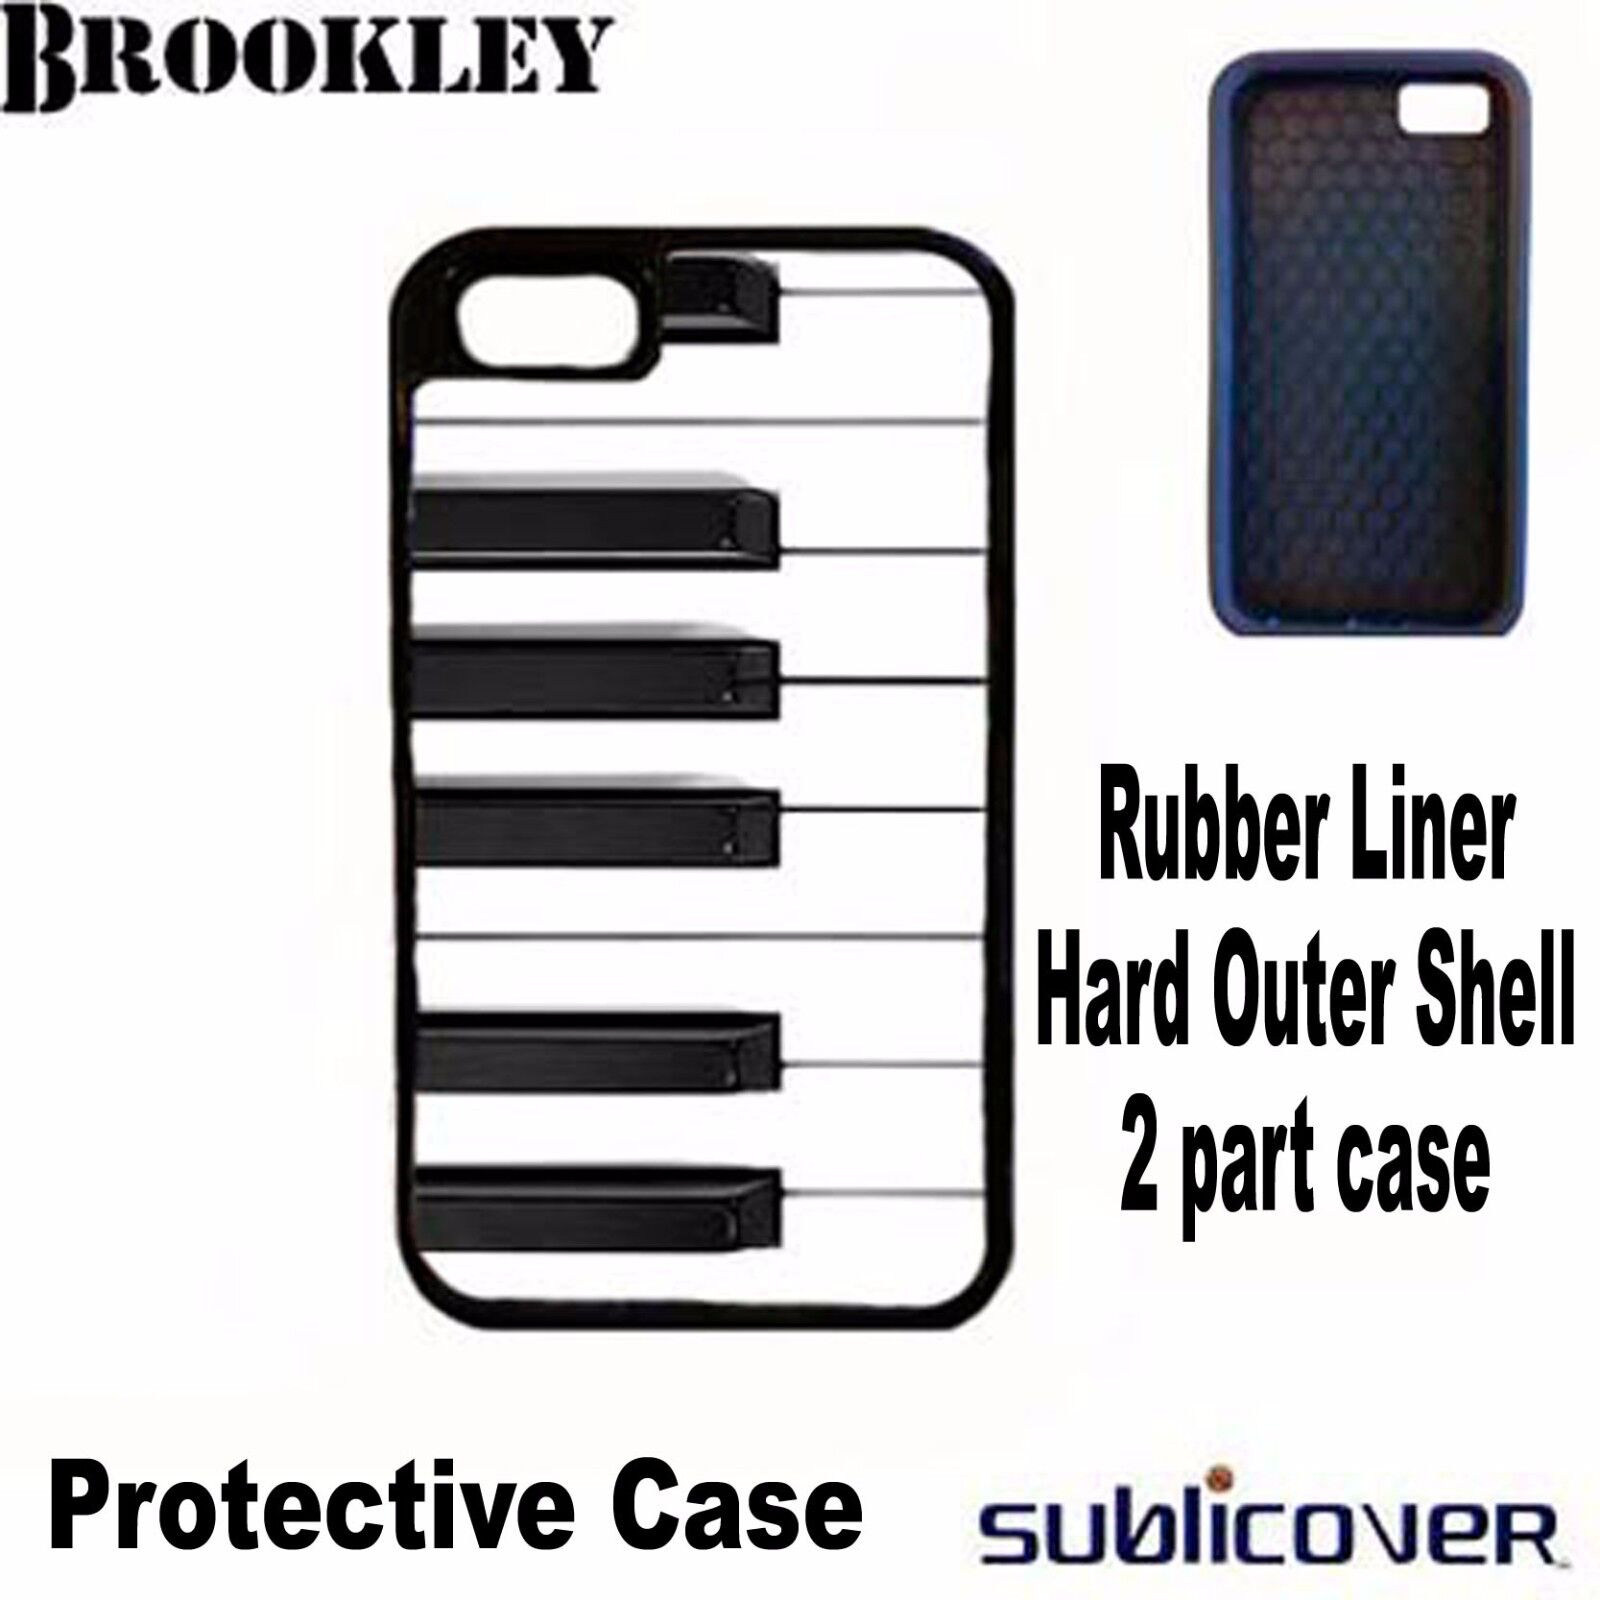 Brookley Protective case